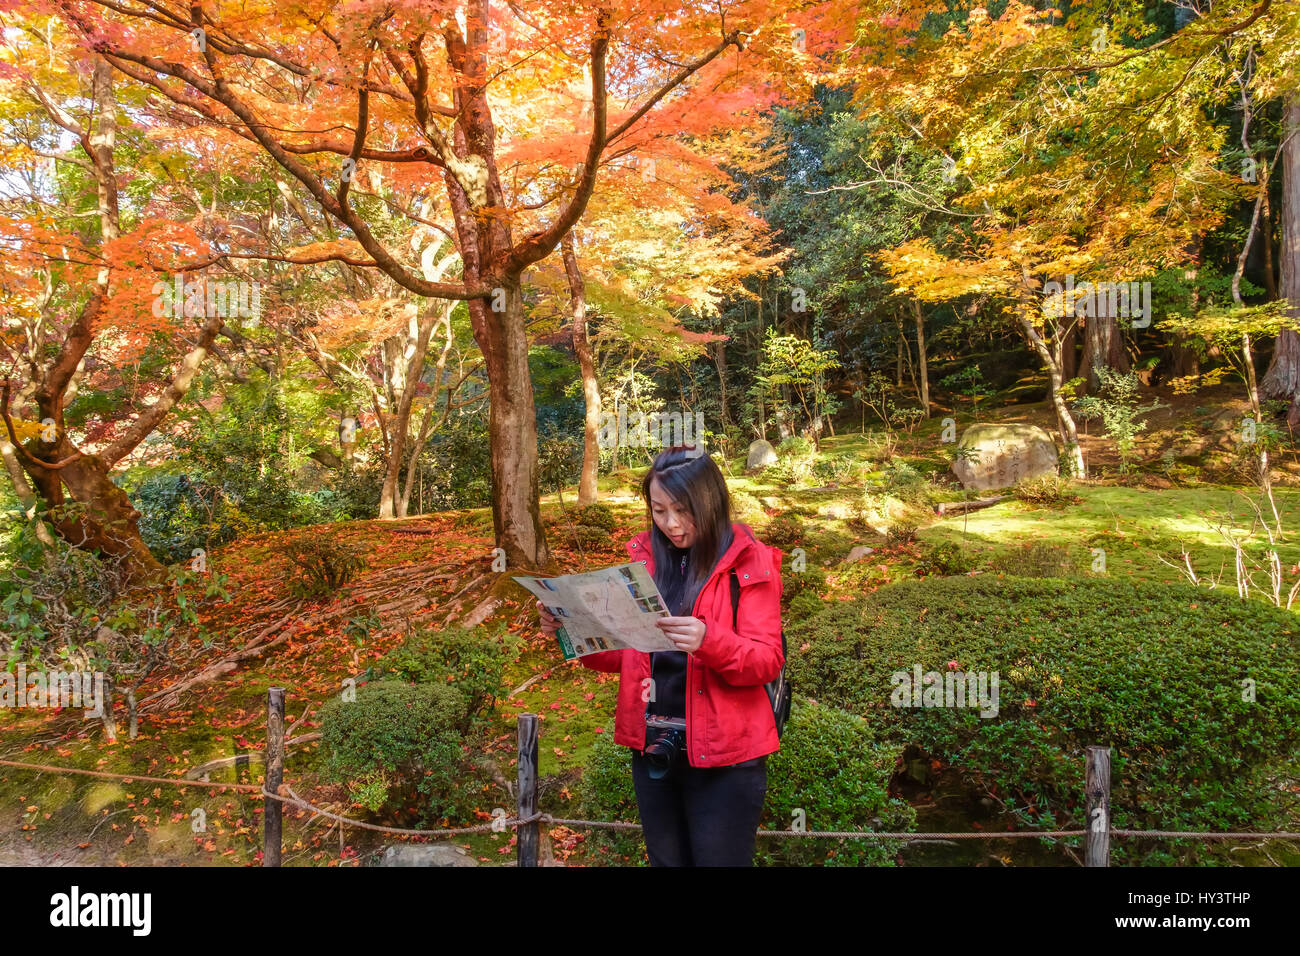 Woman tourist in red jacket and with camera stands and looks at map in garden with autumn colour trees in Shisen - Stock Image